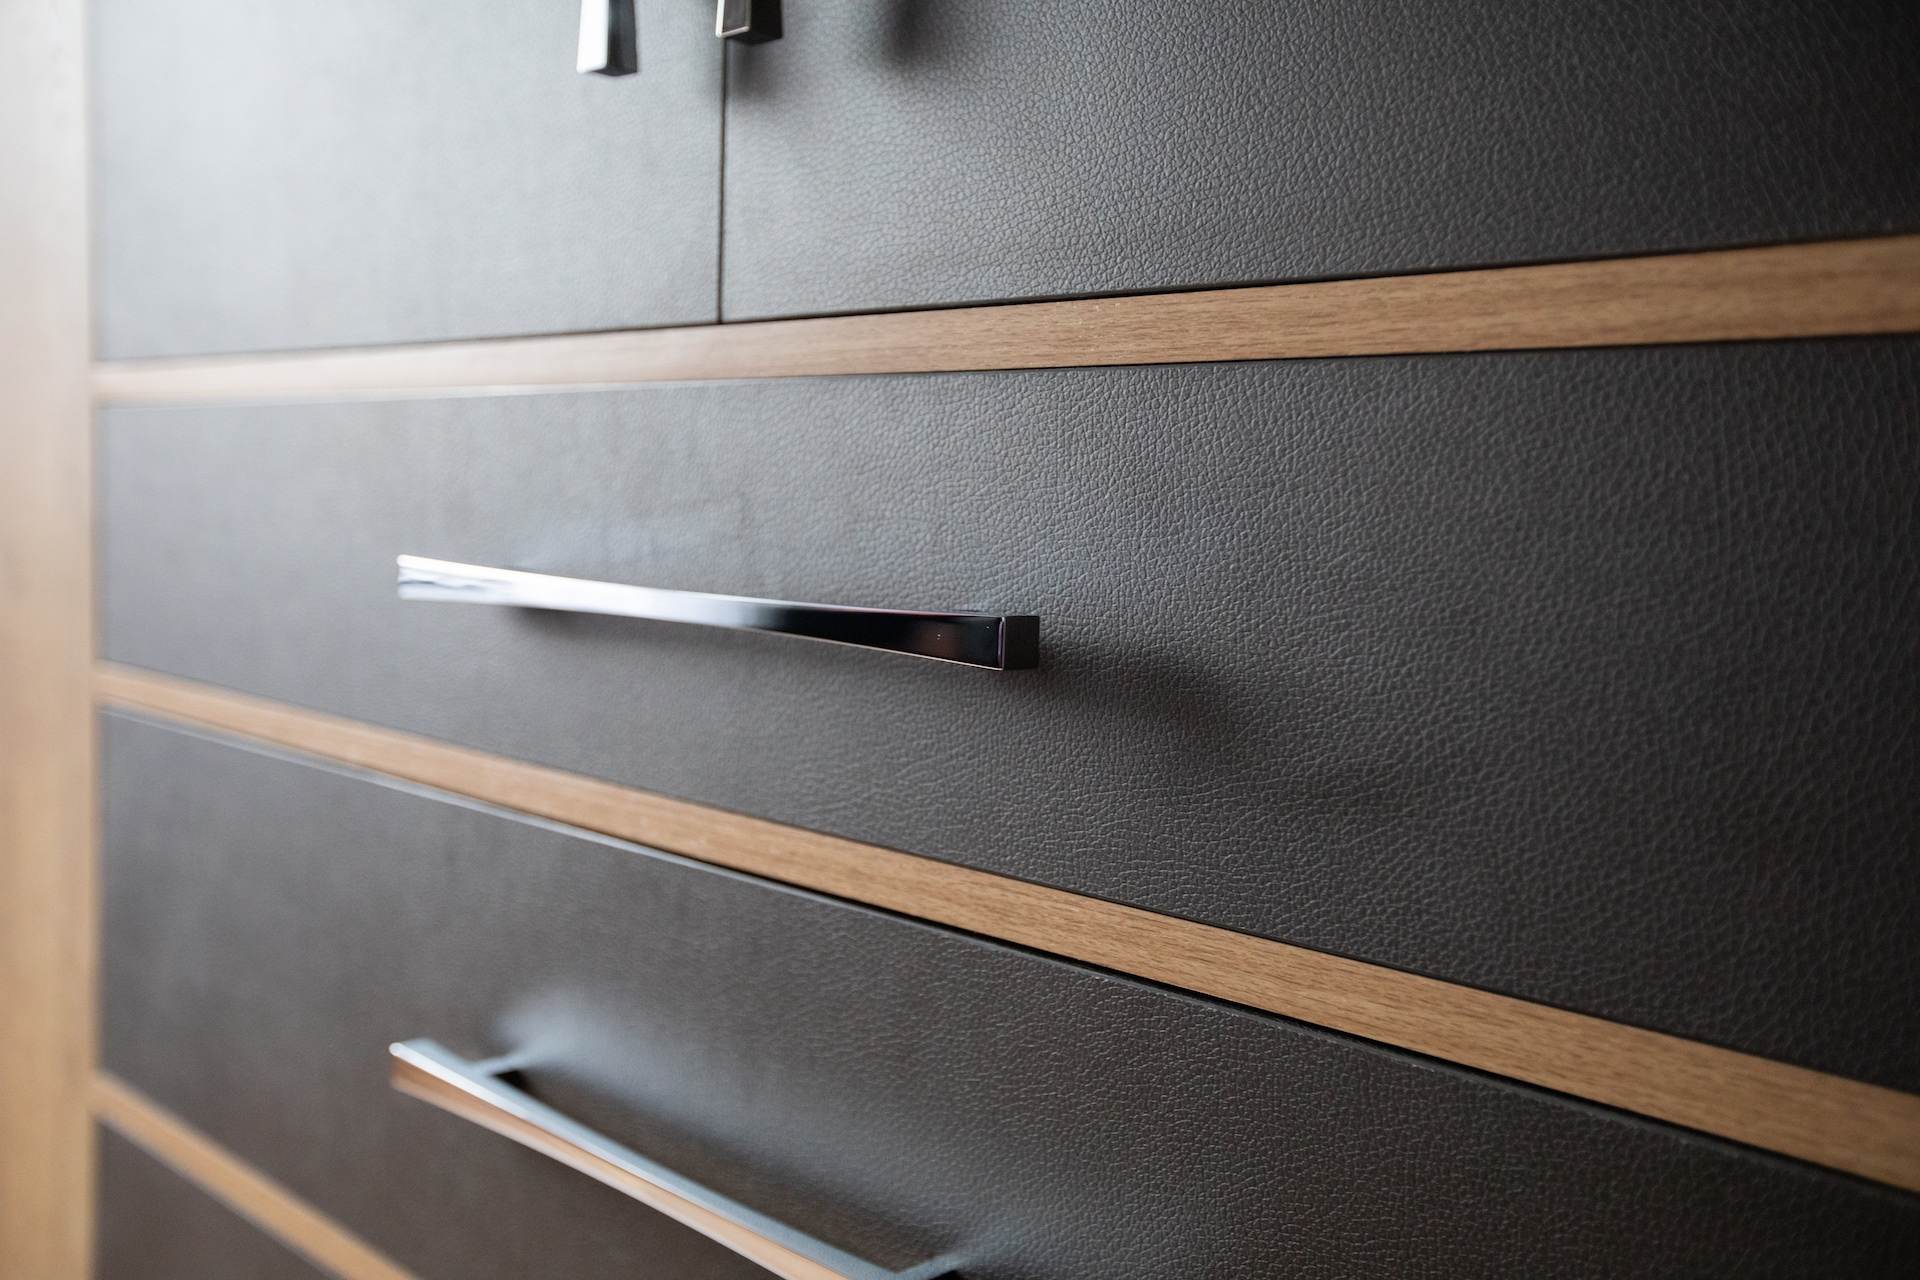 wardrobe closed drawers with silver handles